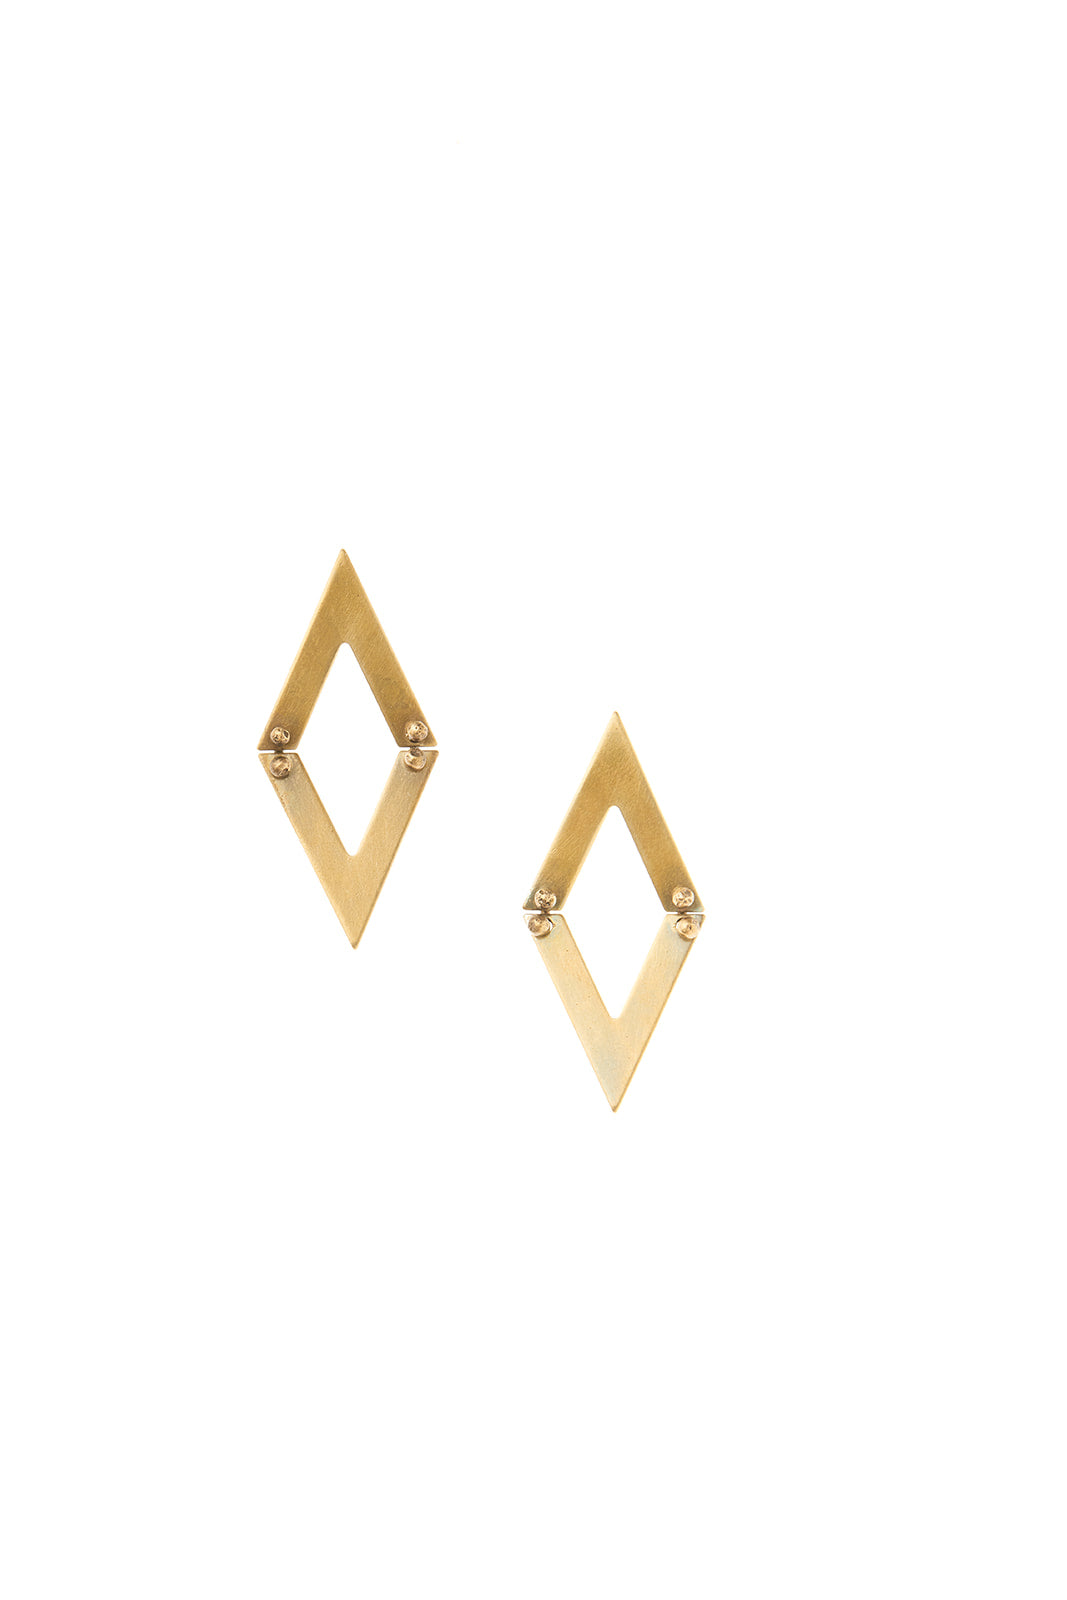 Hinge Earrings